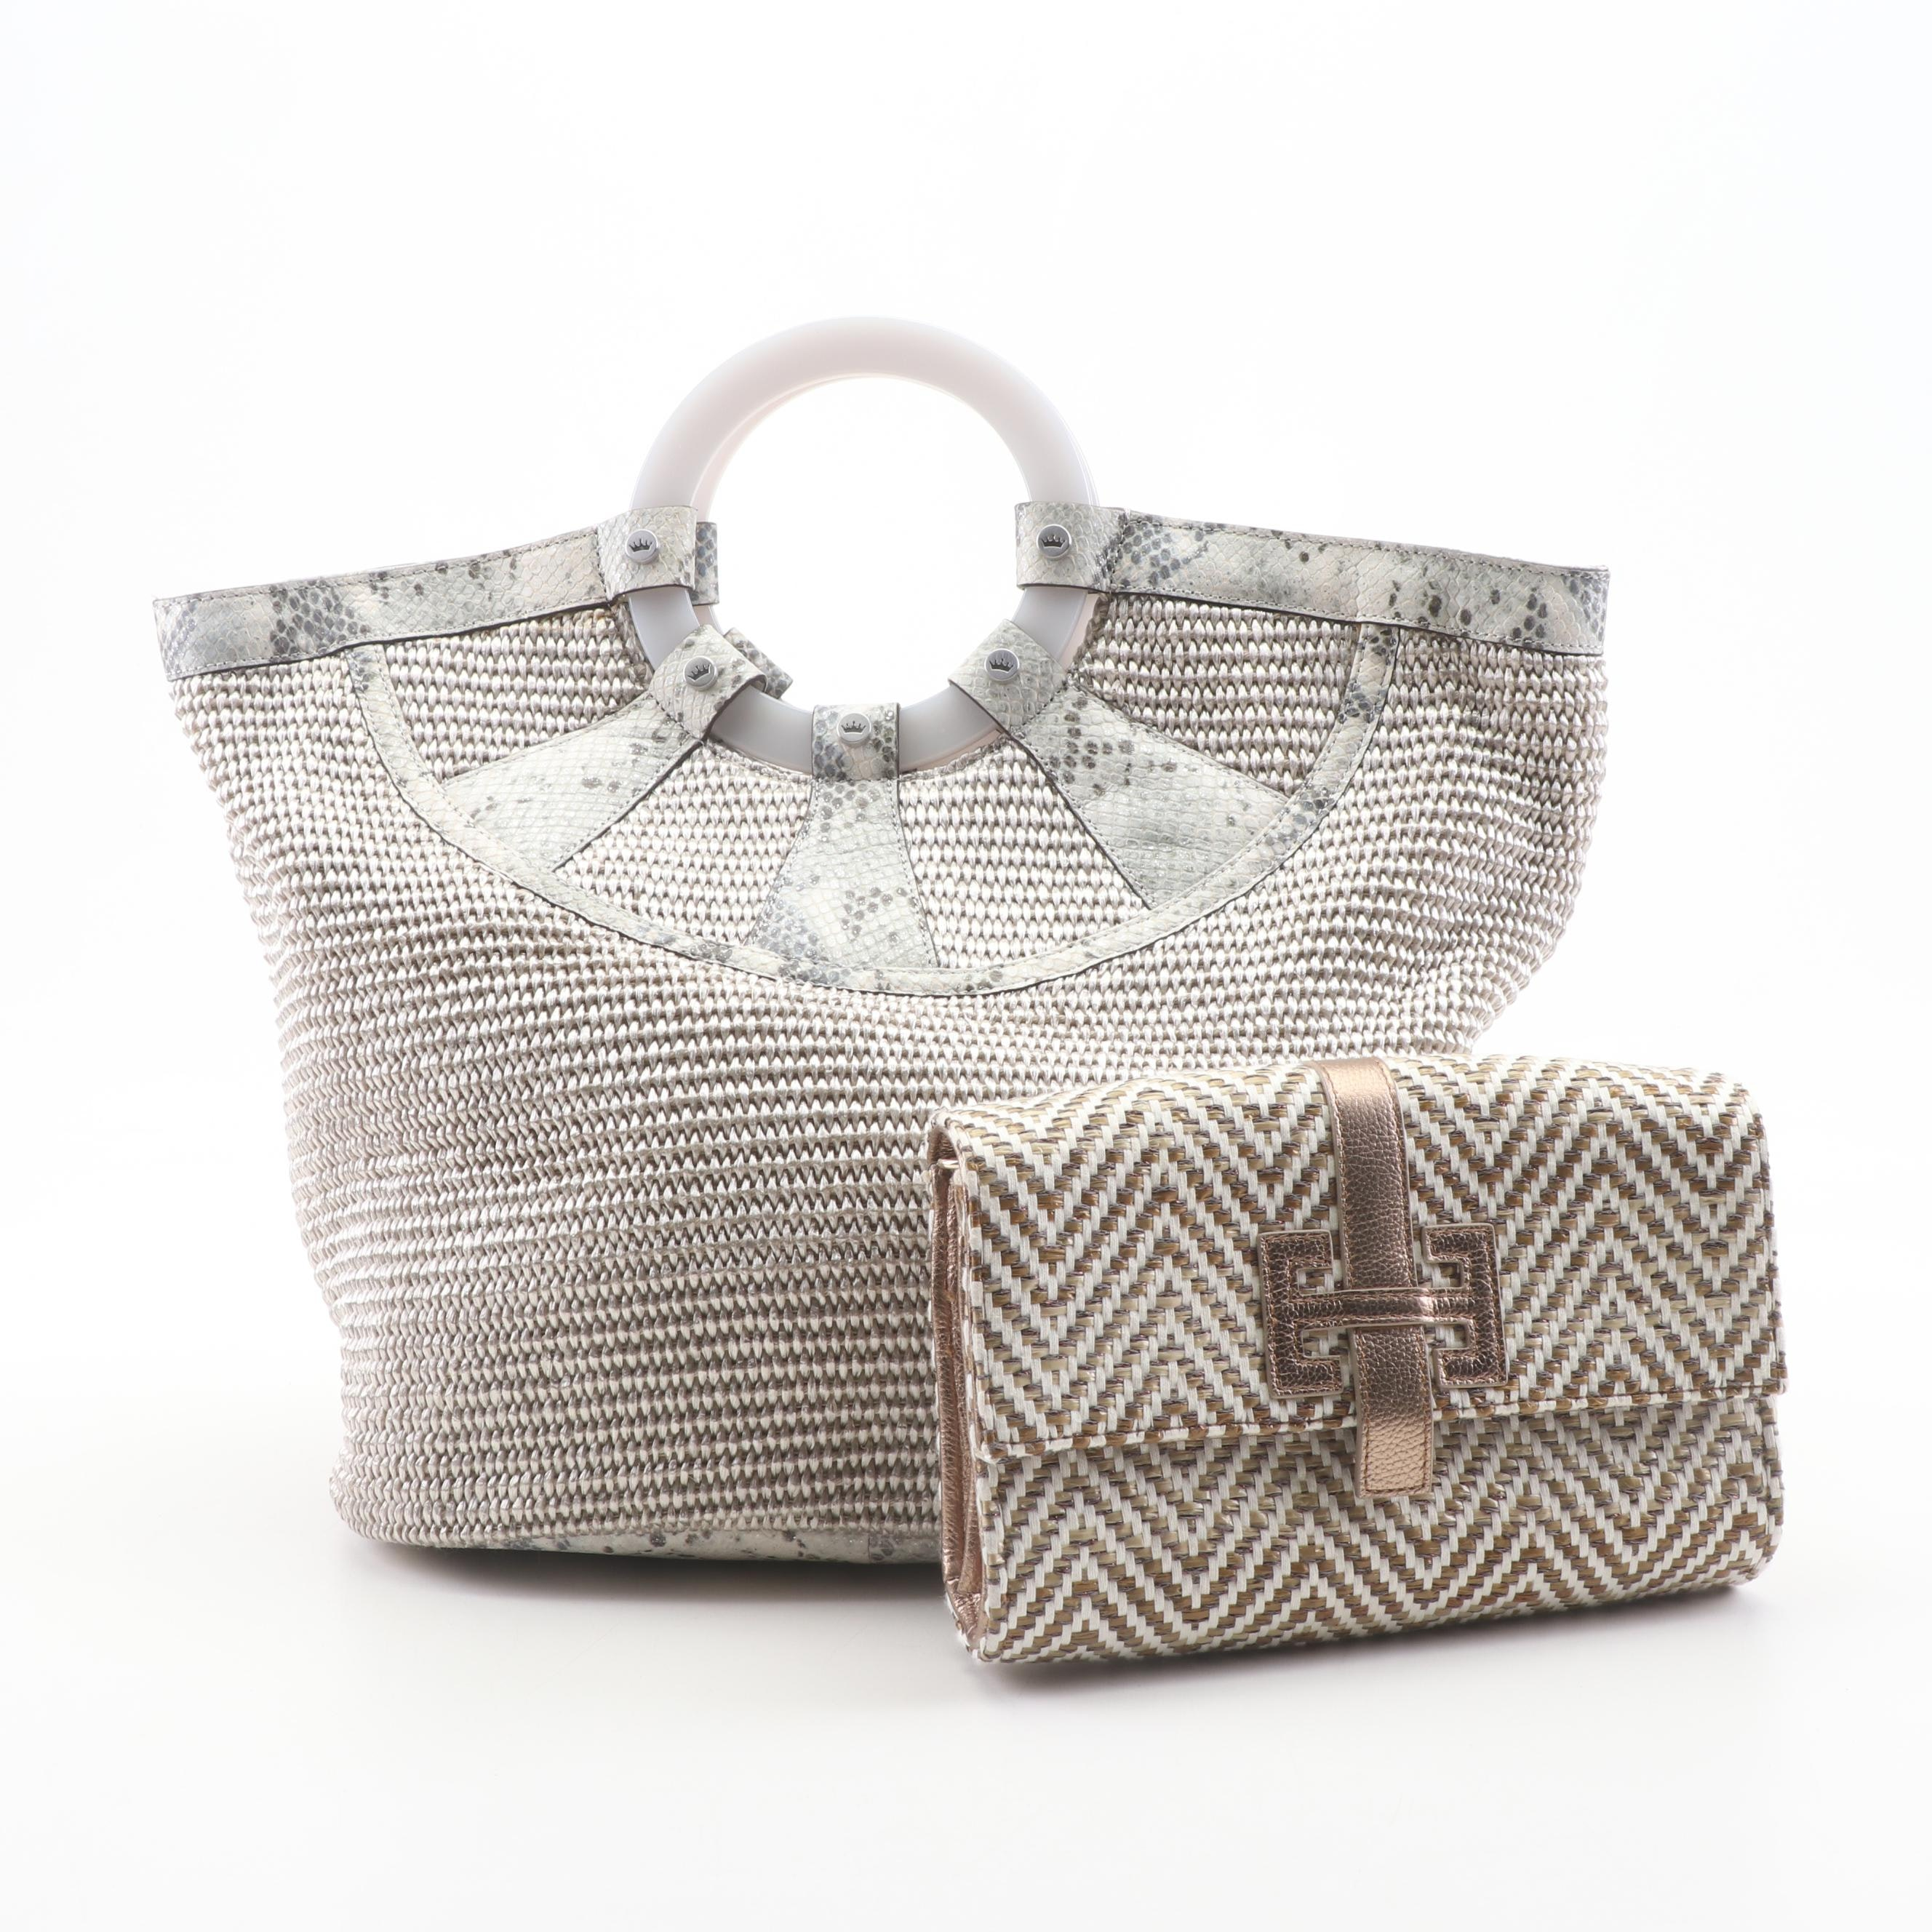 Elaine Turner Woven and Leather Top Handle Bag with Wallet